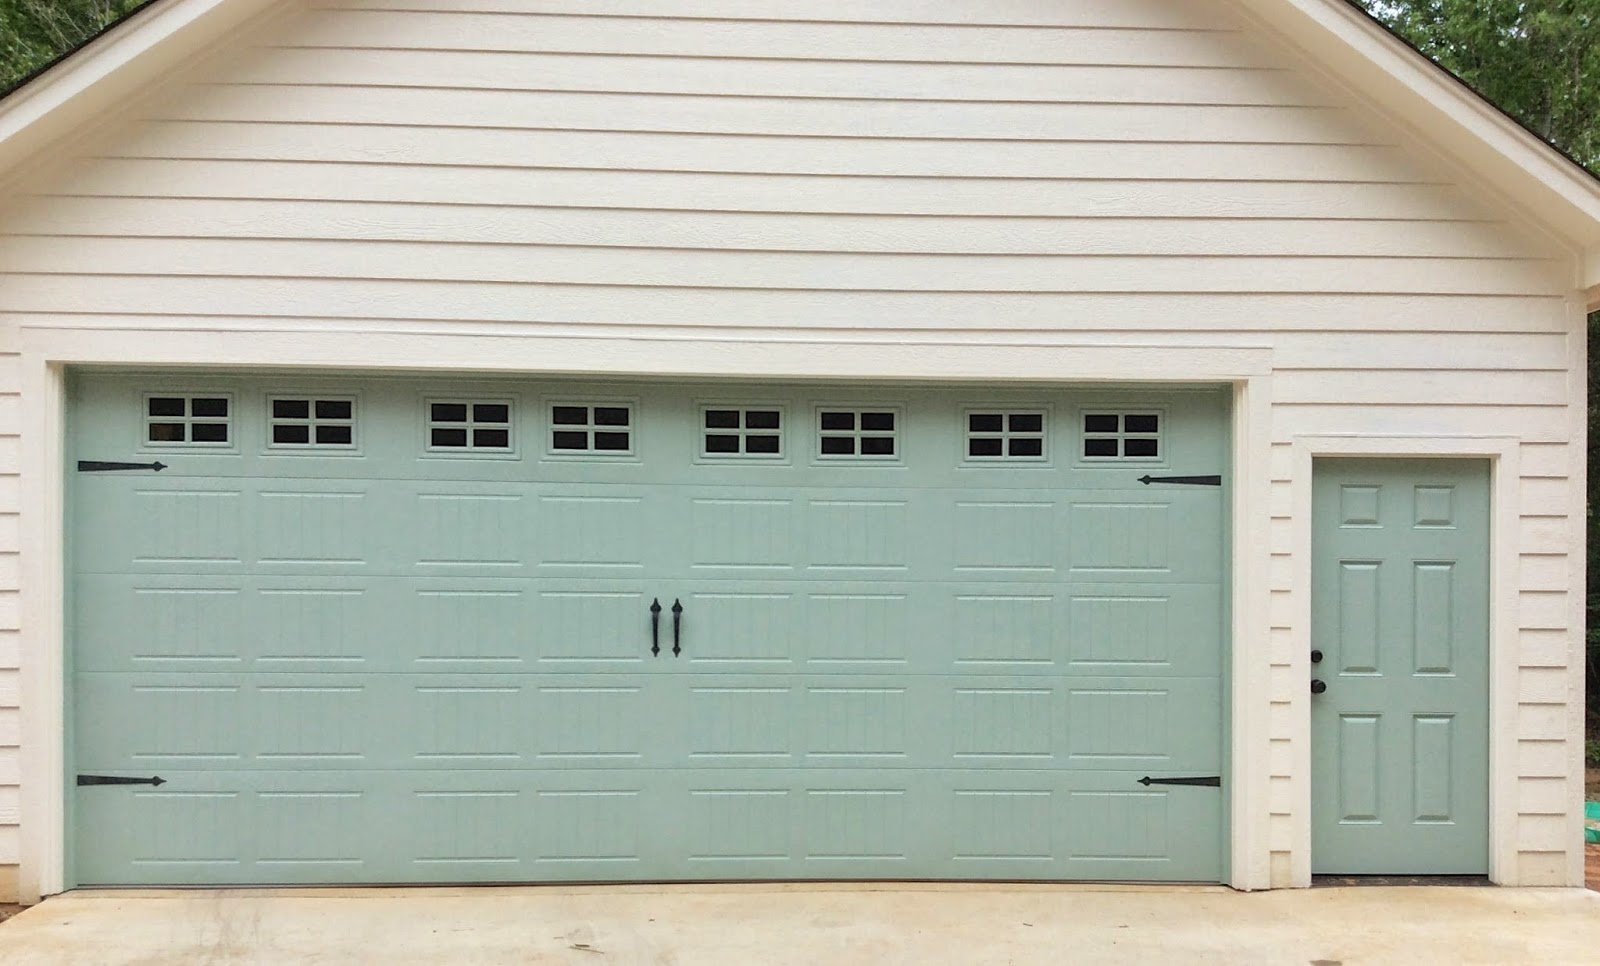 966 #4E5C3B Turqoise Garage Door Costco Made By Solid Wood With Simple Door Panel  pic Garage Doors At Costco 36911600